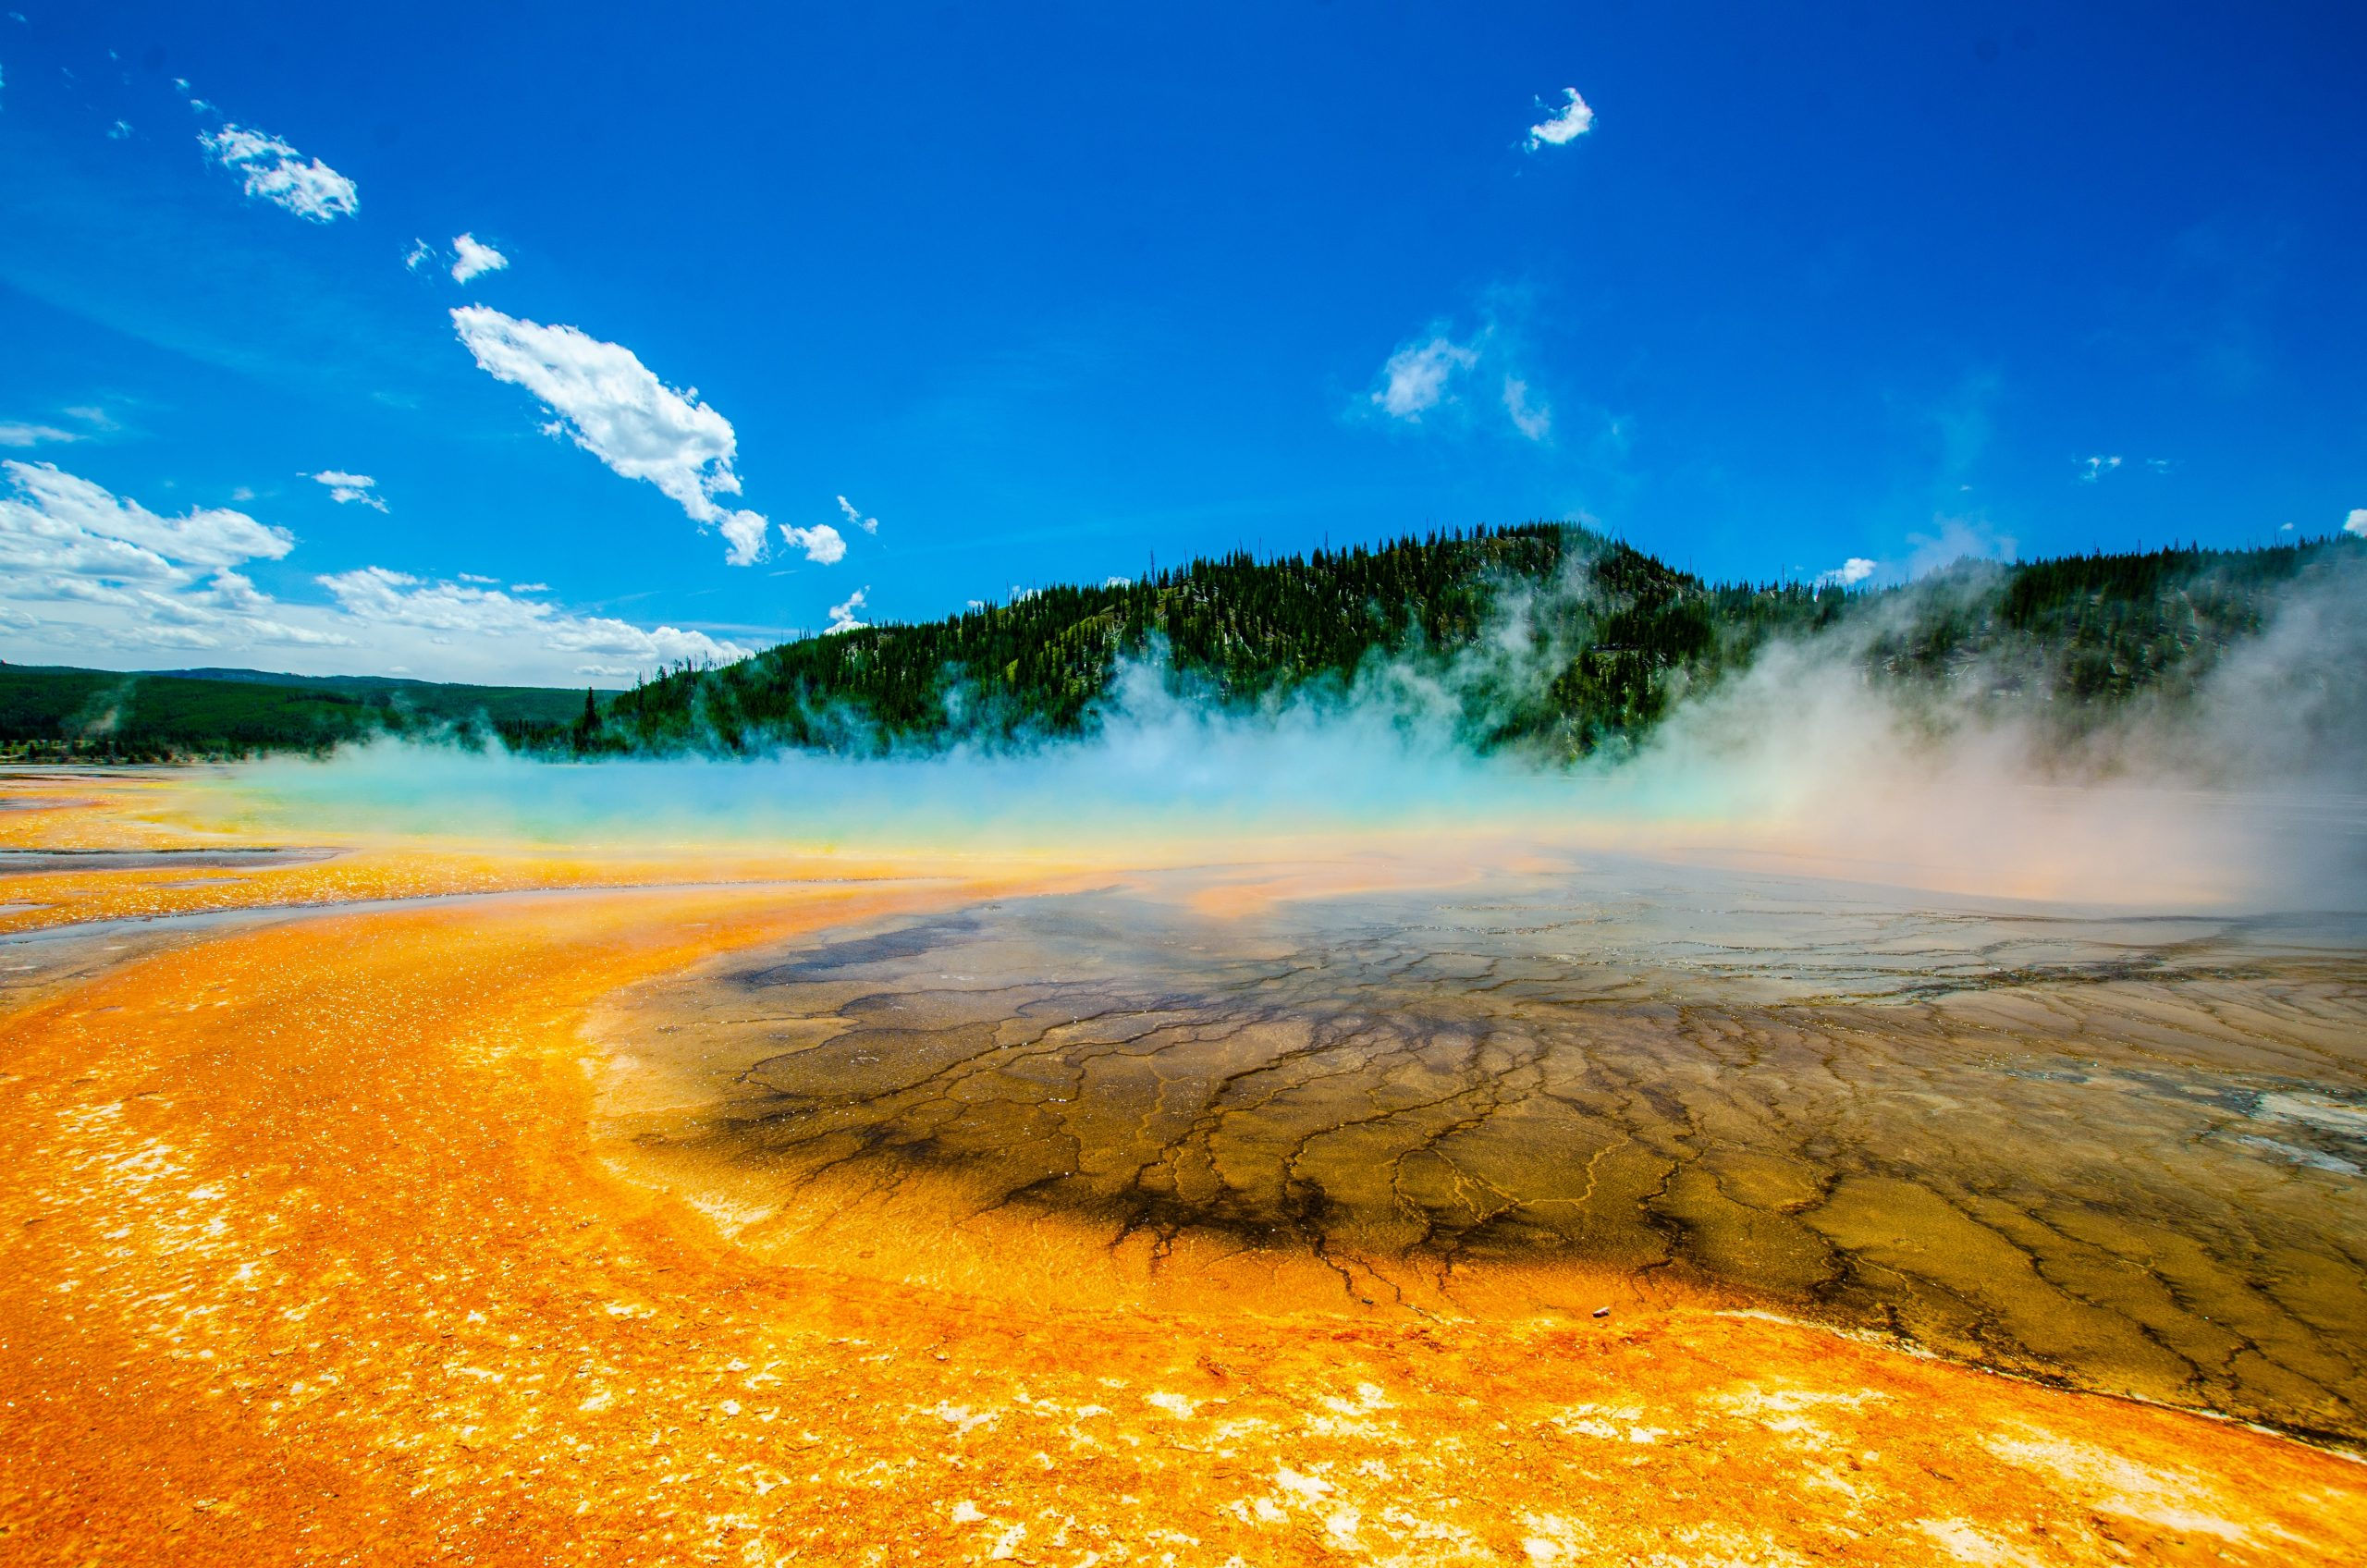 18-Best-Places-to-Travel-in-July-Destinations-in-the-U.S.